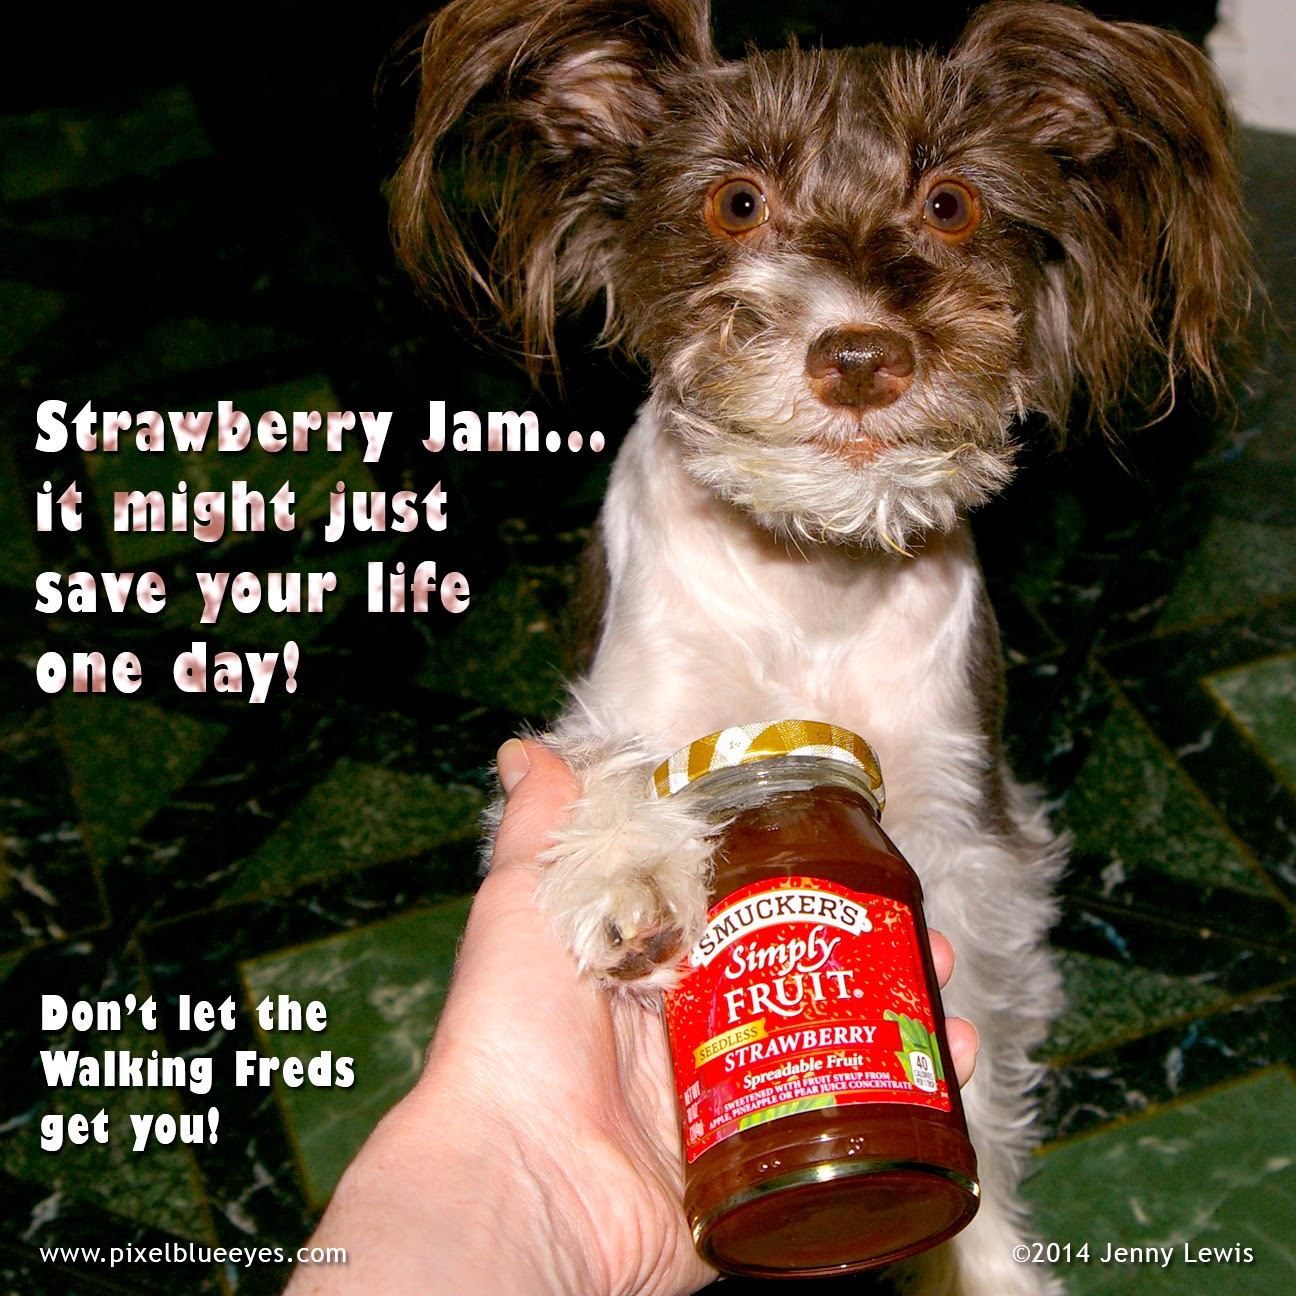 Pixel stocks up and says that strawberry jam might just save your life one day